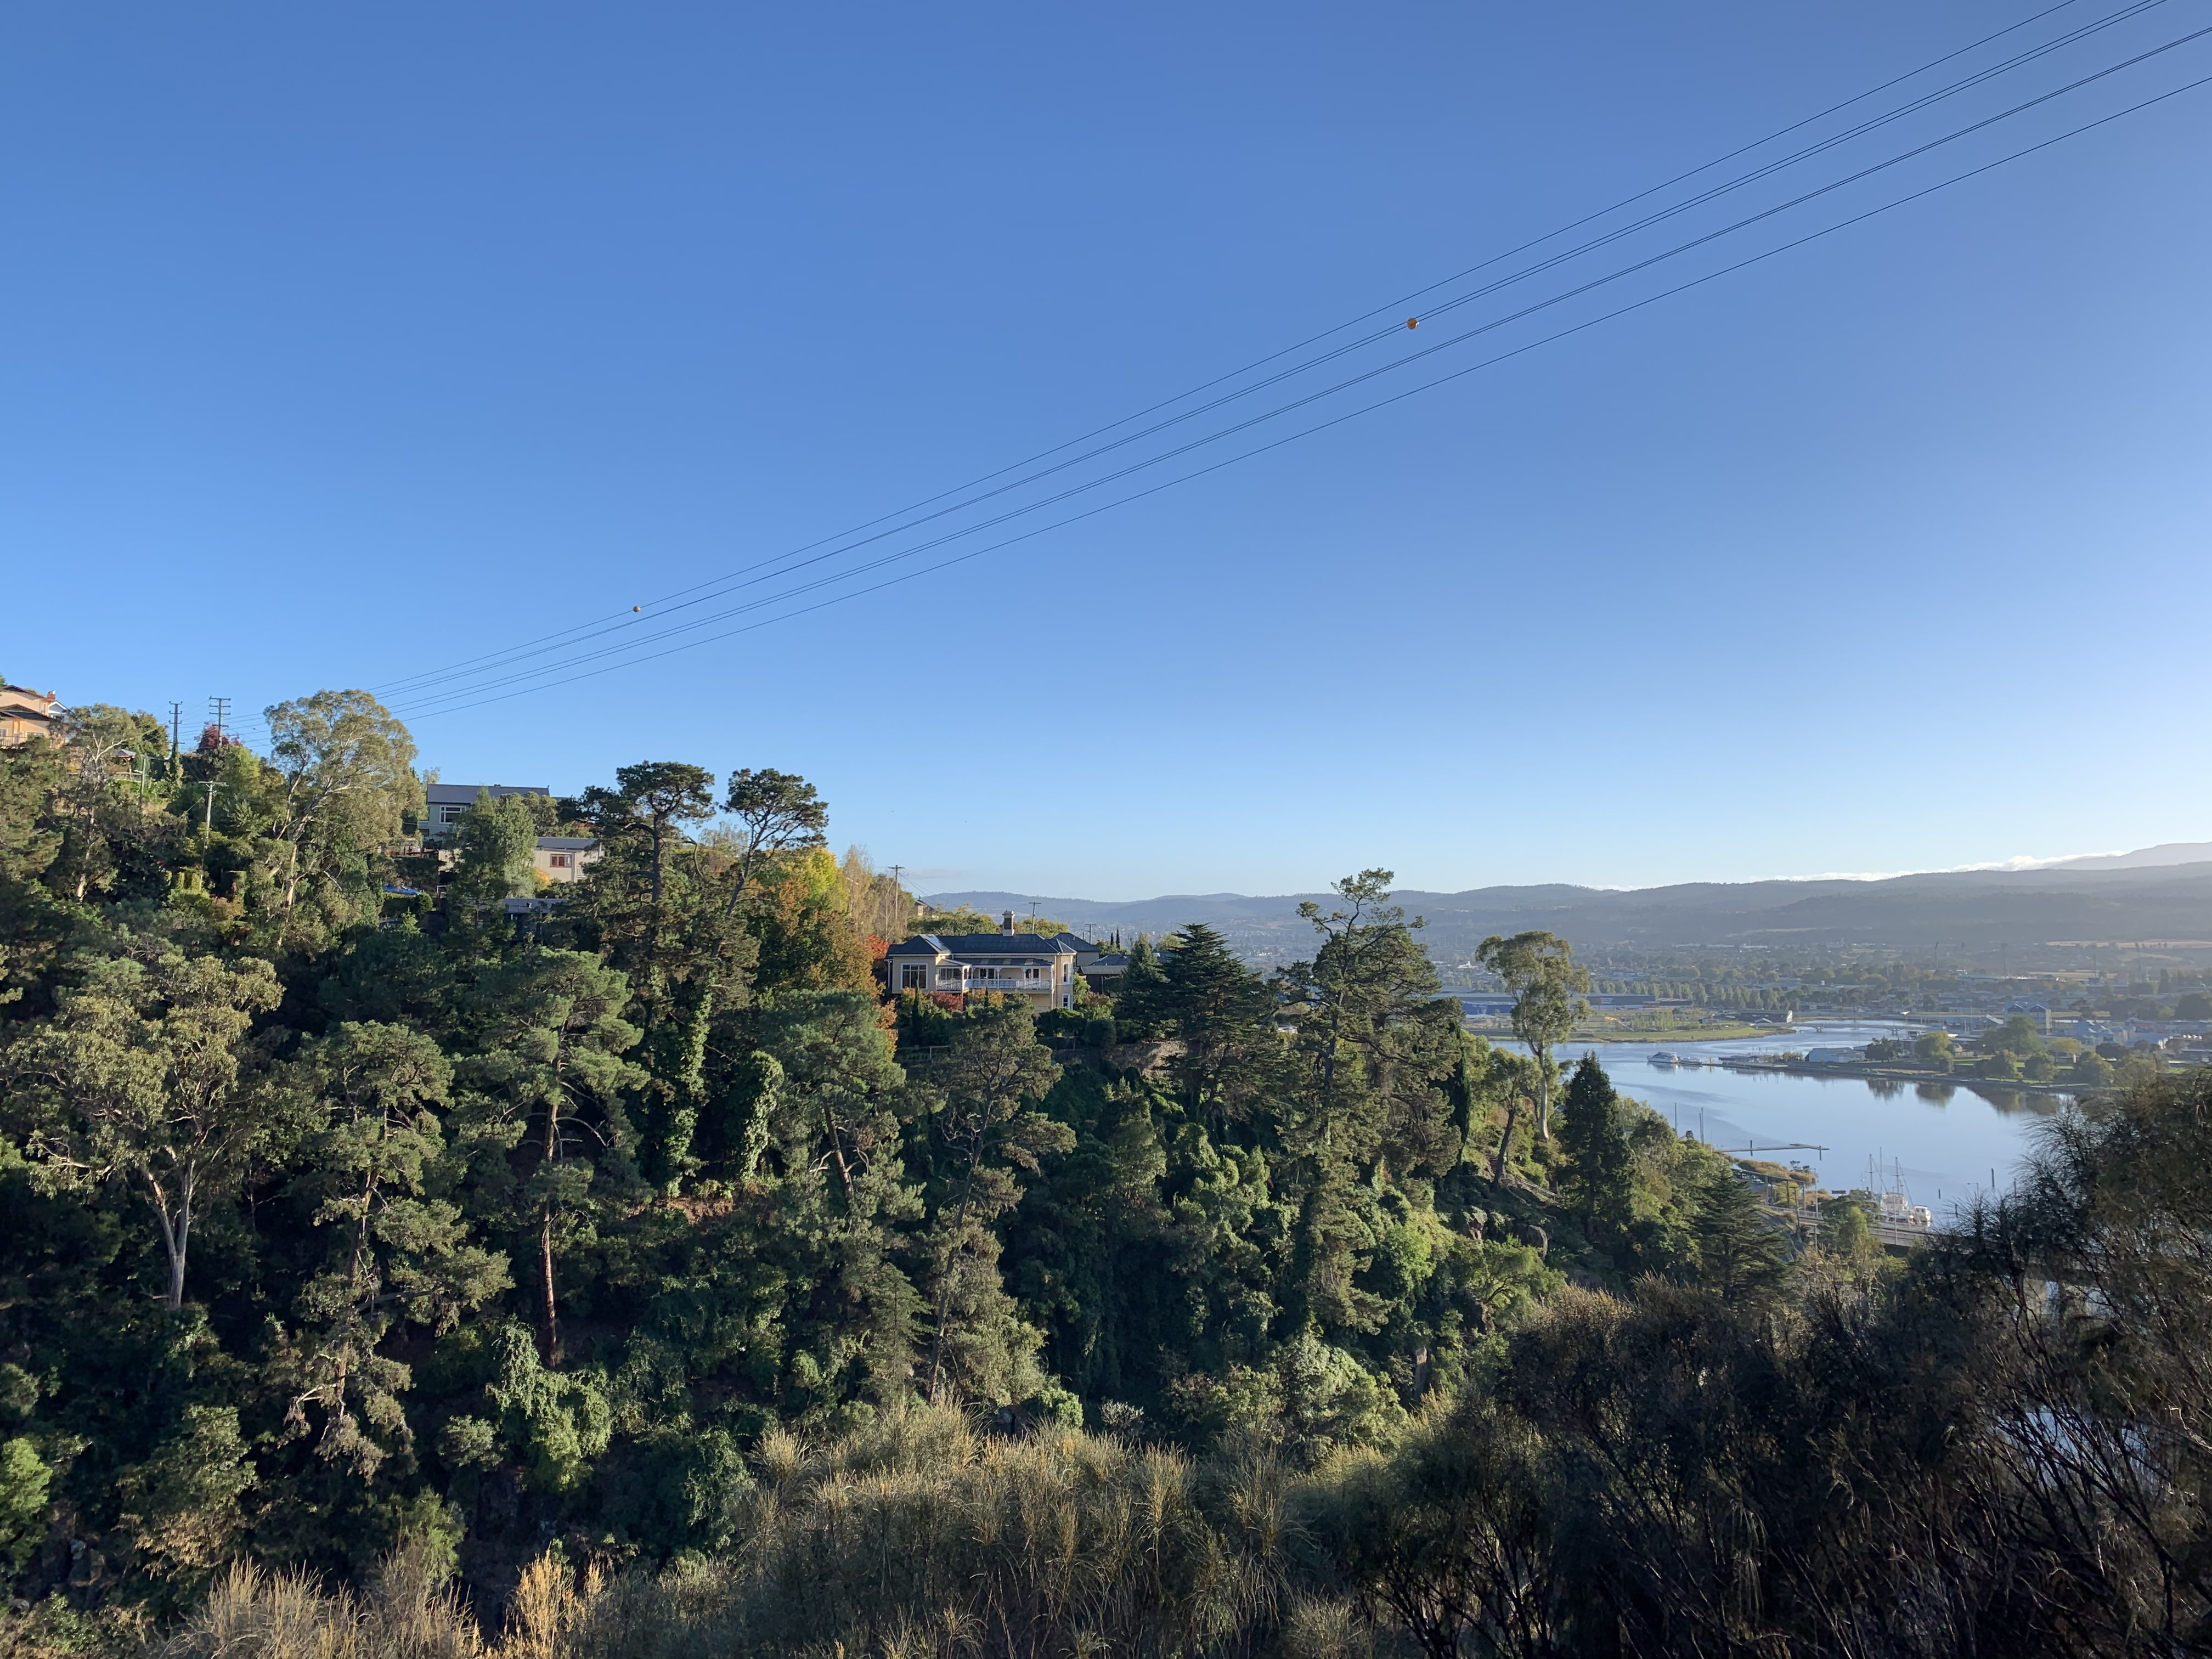 View of the South Esk River from the Zig Zag Trail, Launceston, Tasmania